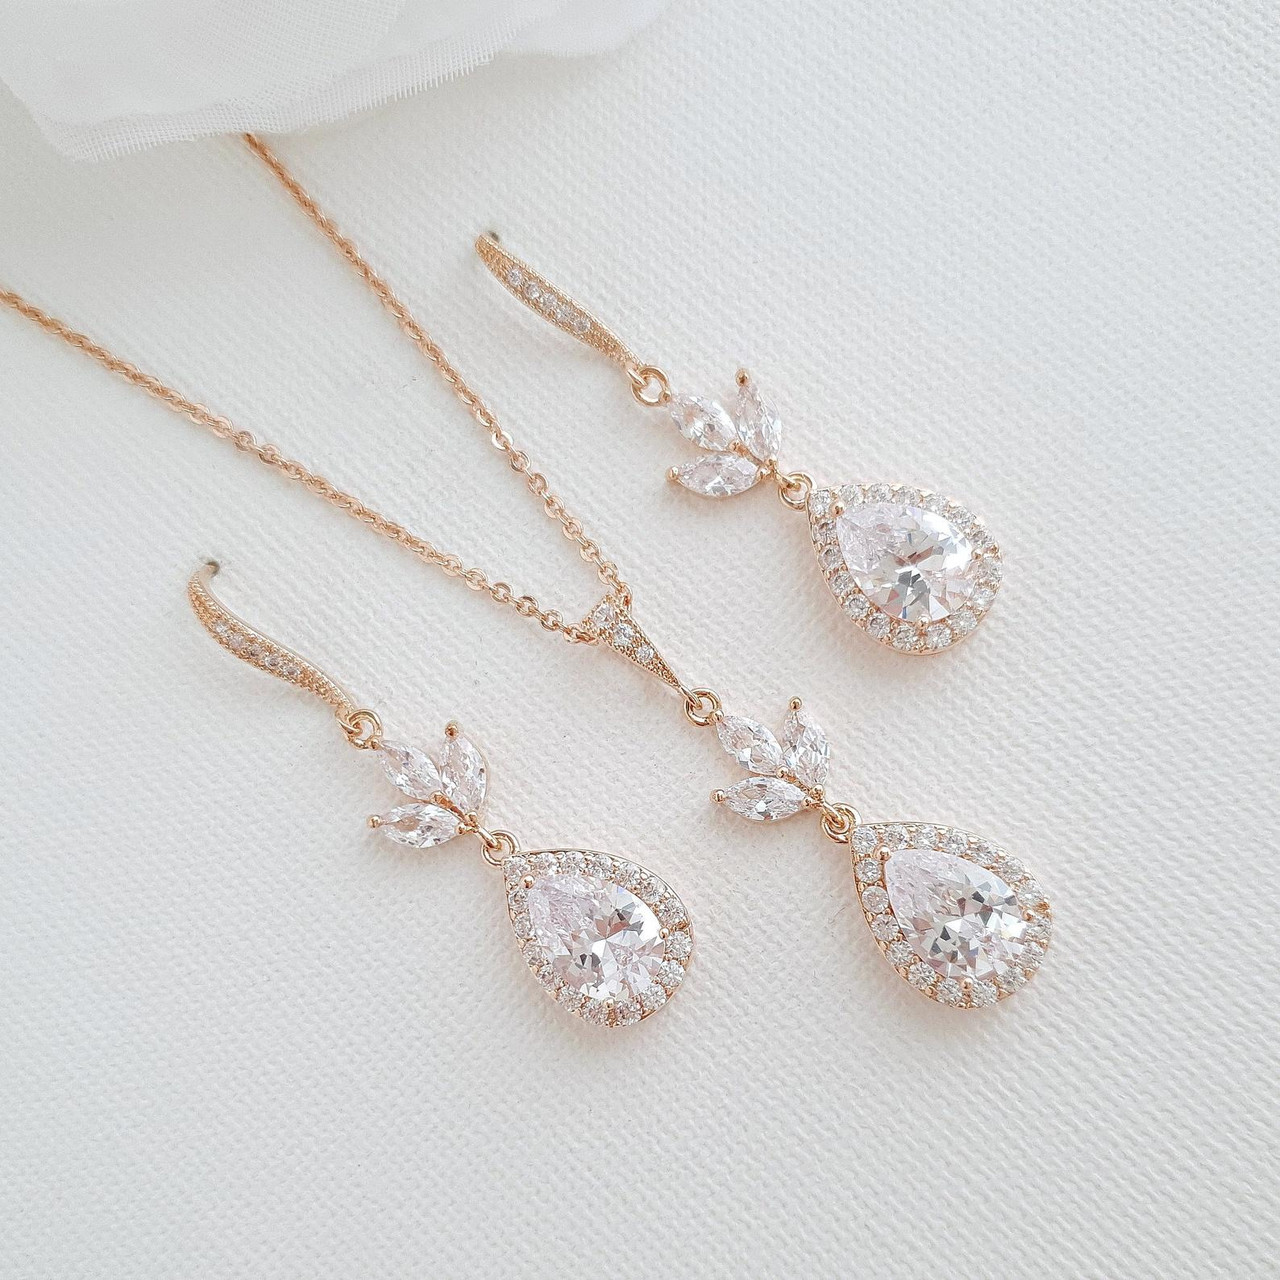 Rose Gold Necklace And Earrings Jewellery Set For Weddings Formal